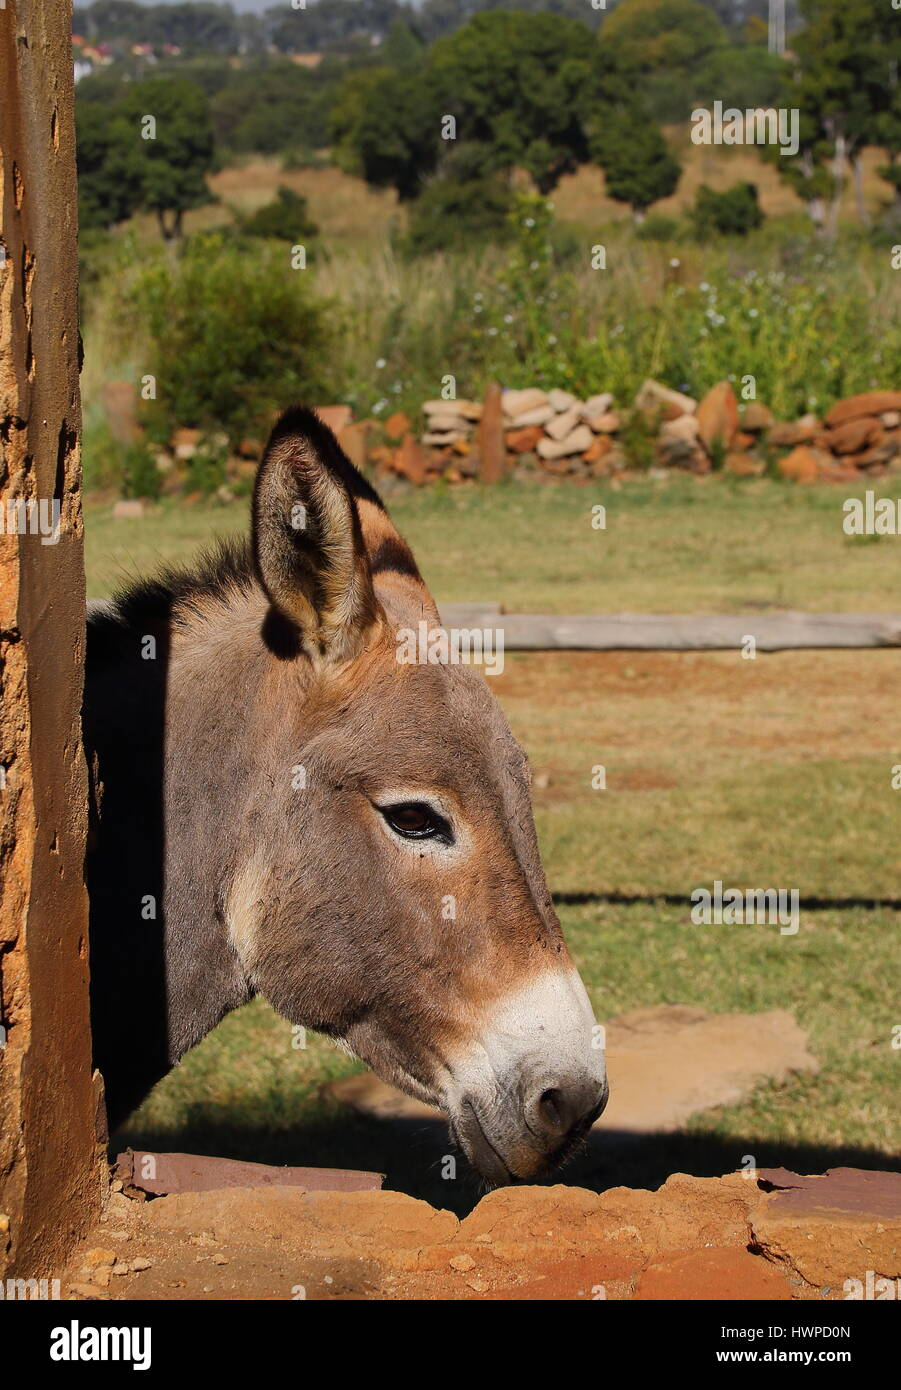 A small grey donkey peeks through the window of a run down old abandoned stable - Stock Image